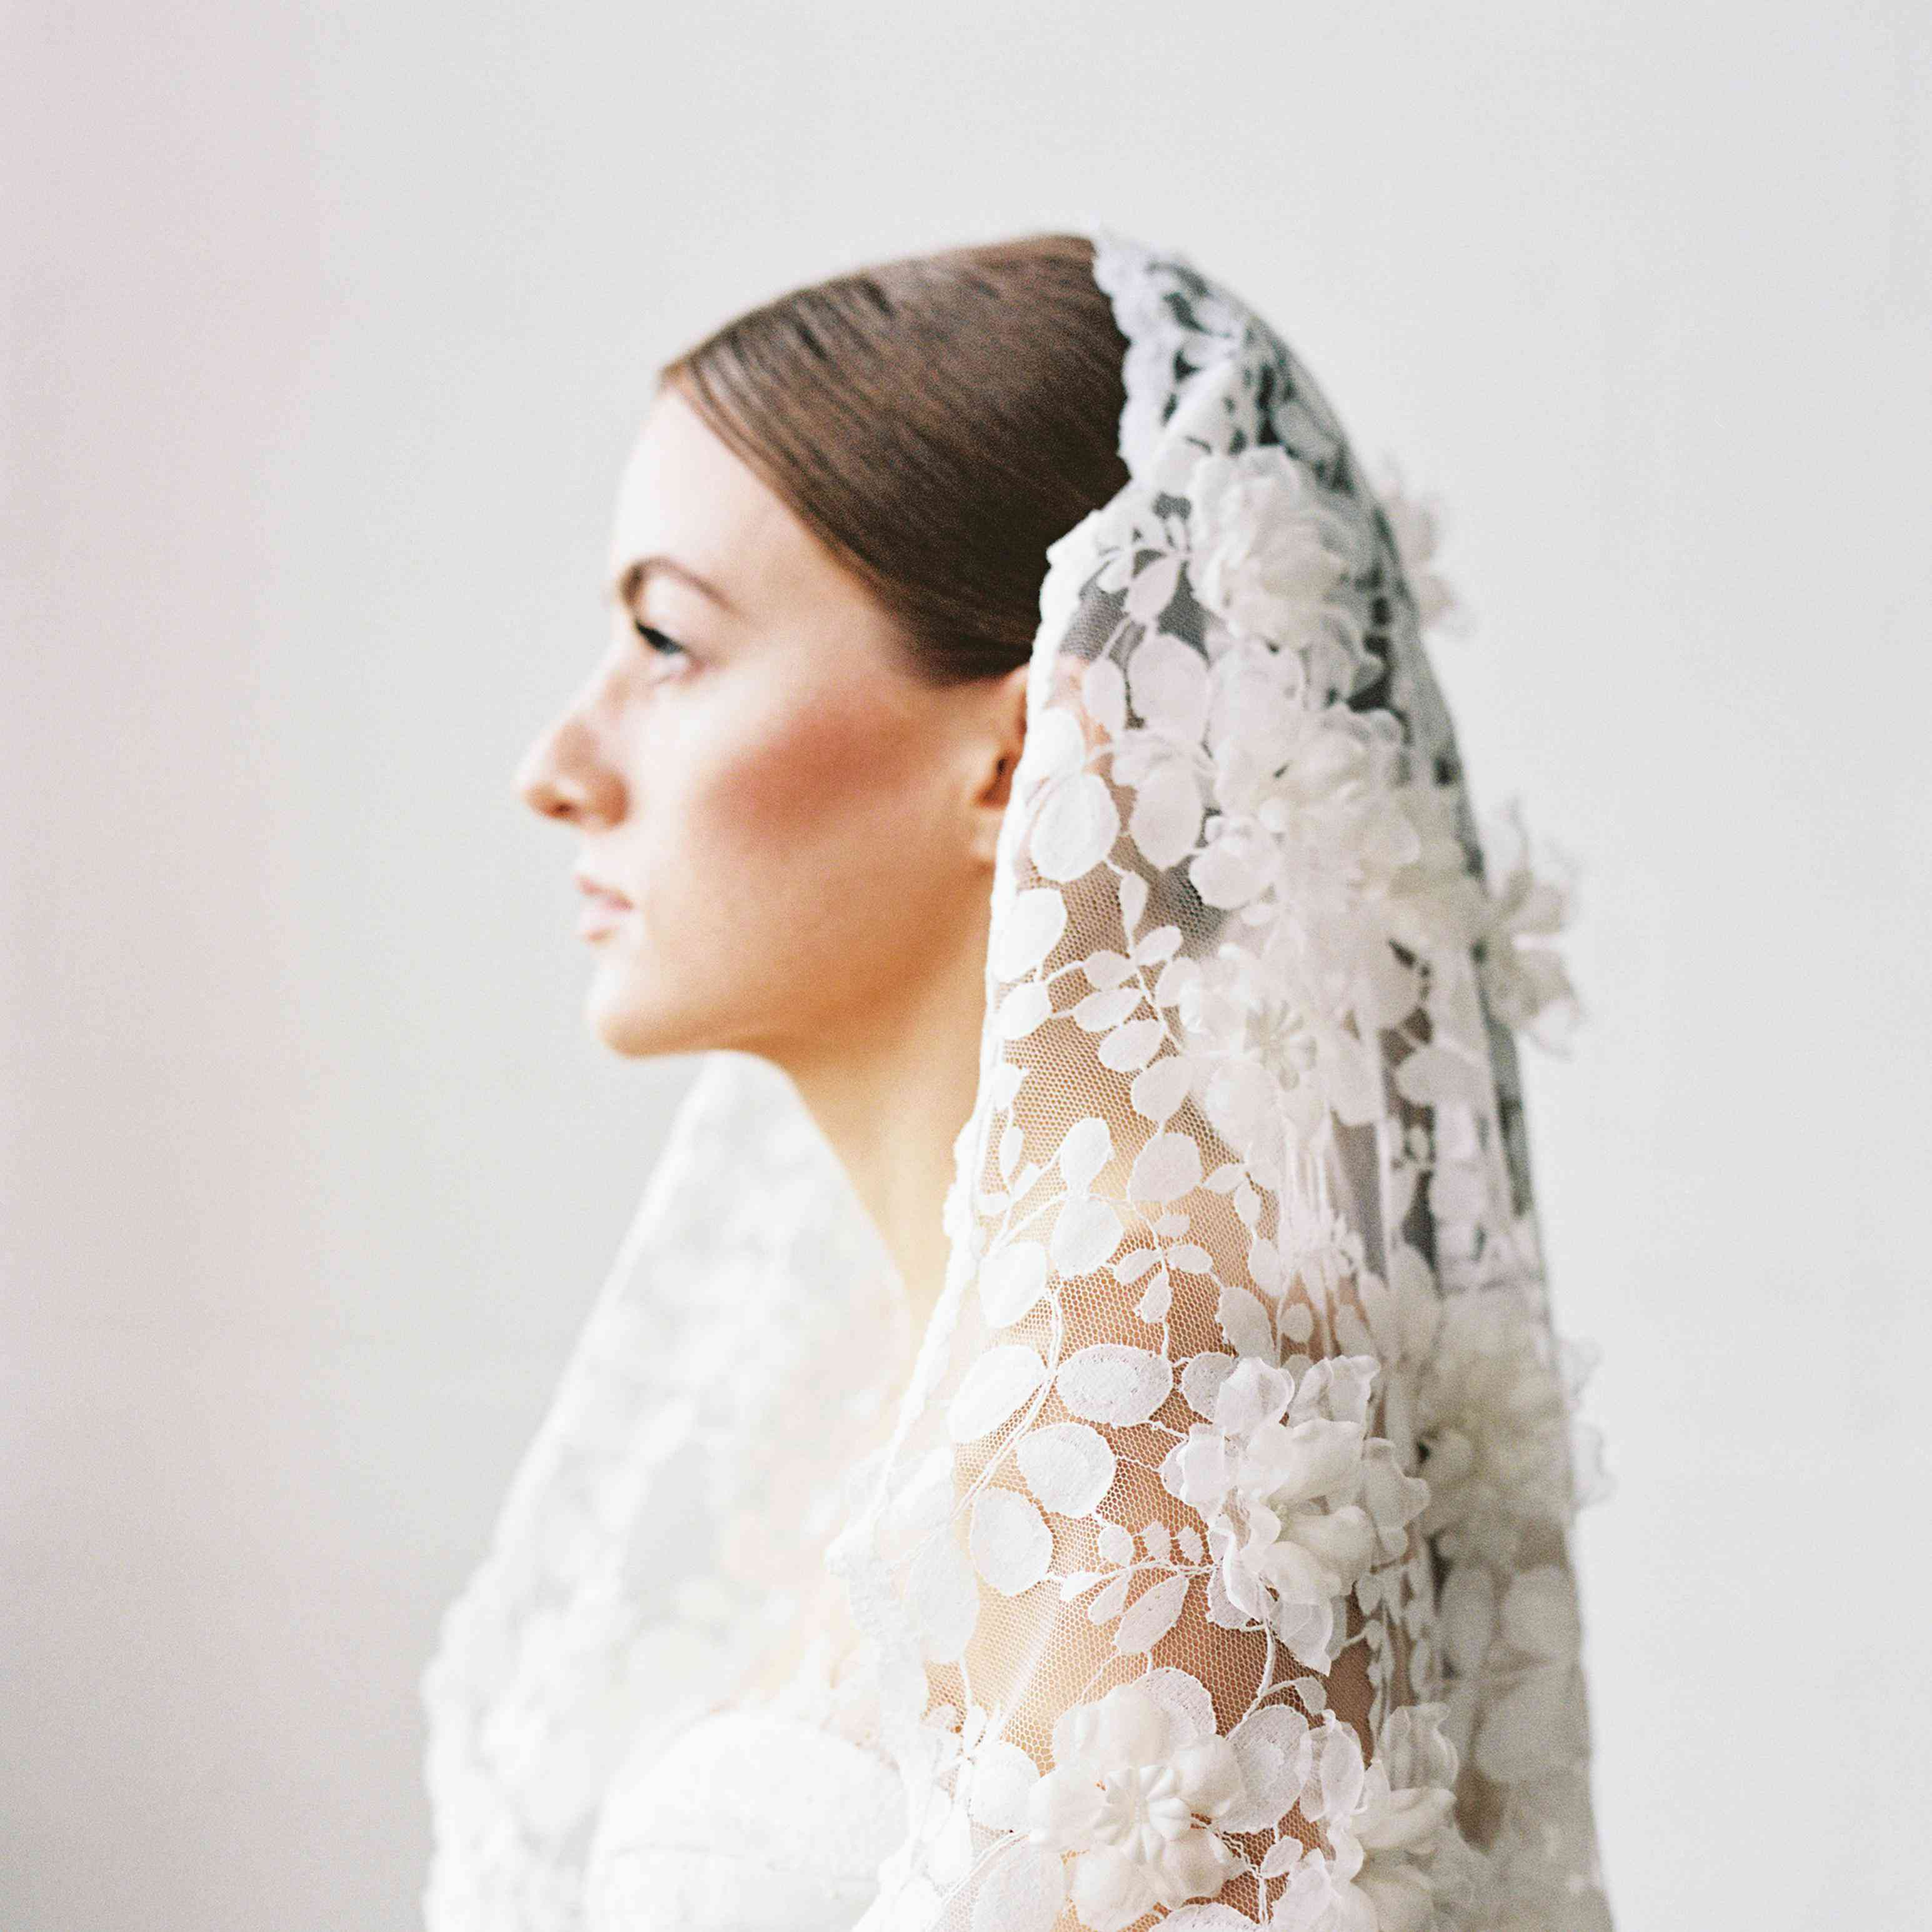 Wedding Veils Styles: 16 Of The Prettiest Wedding Veils From Etsy For Every